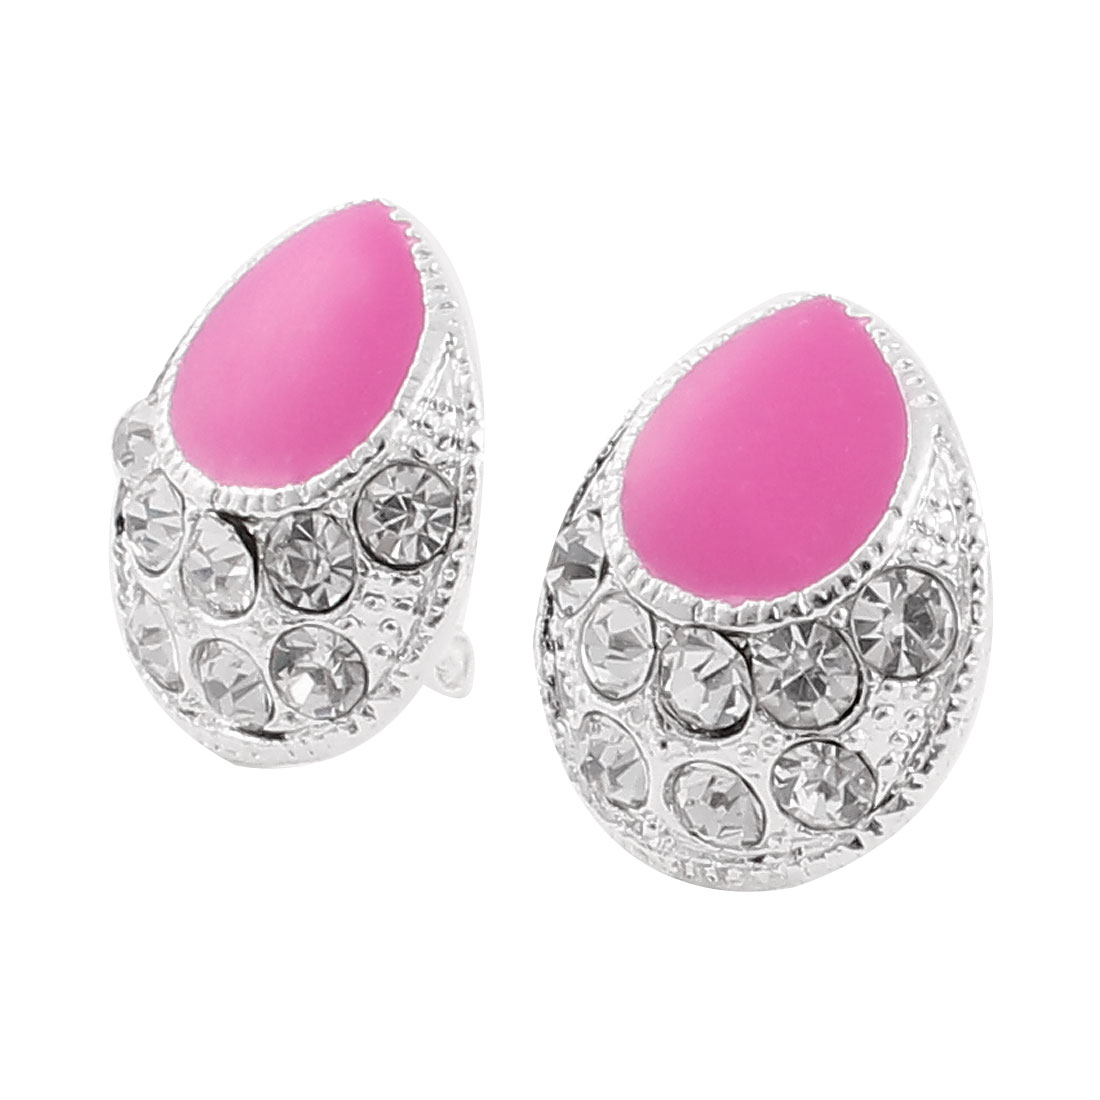 Woman Rhinestones Detail Silver Tone Pink French Clip Earrings Stud Pair